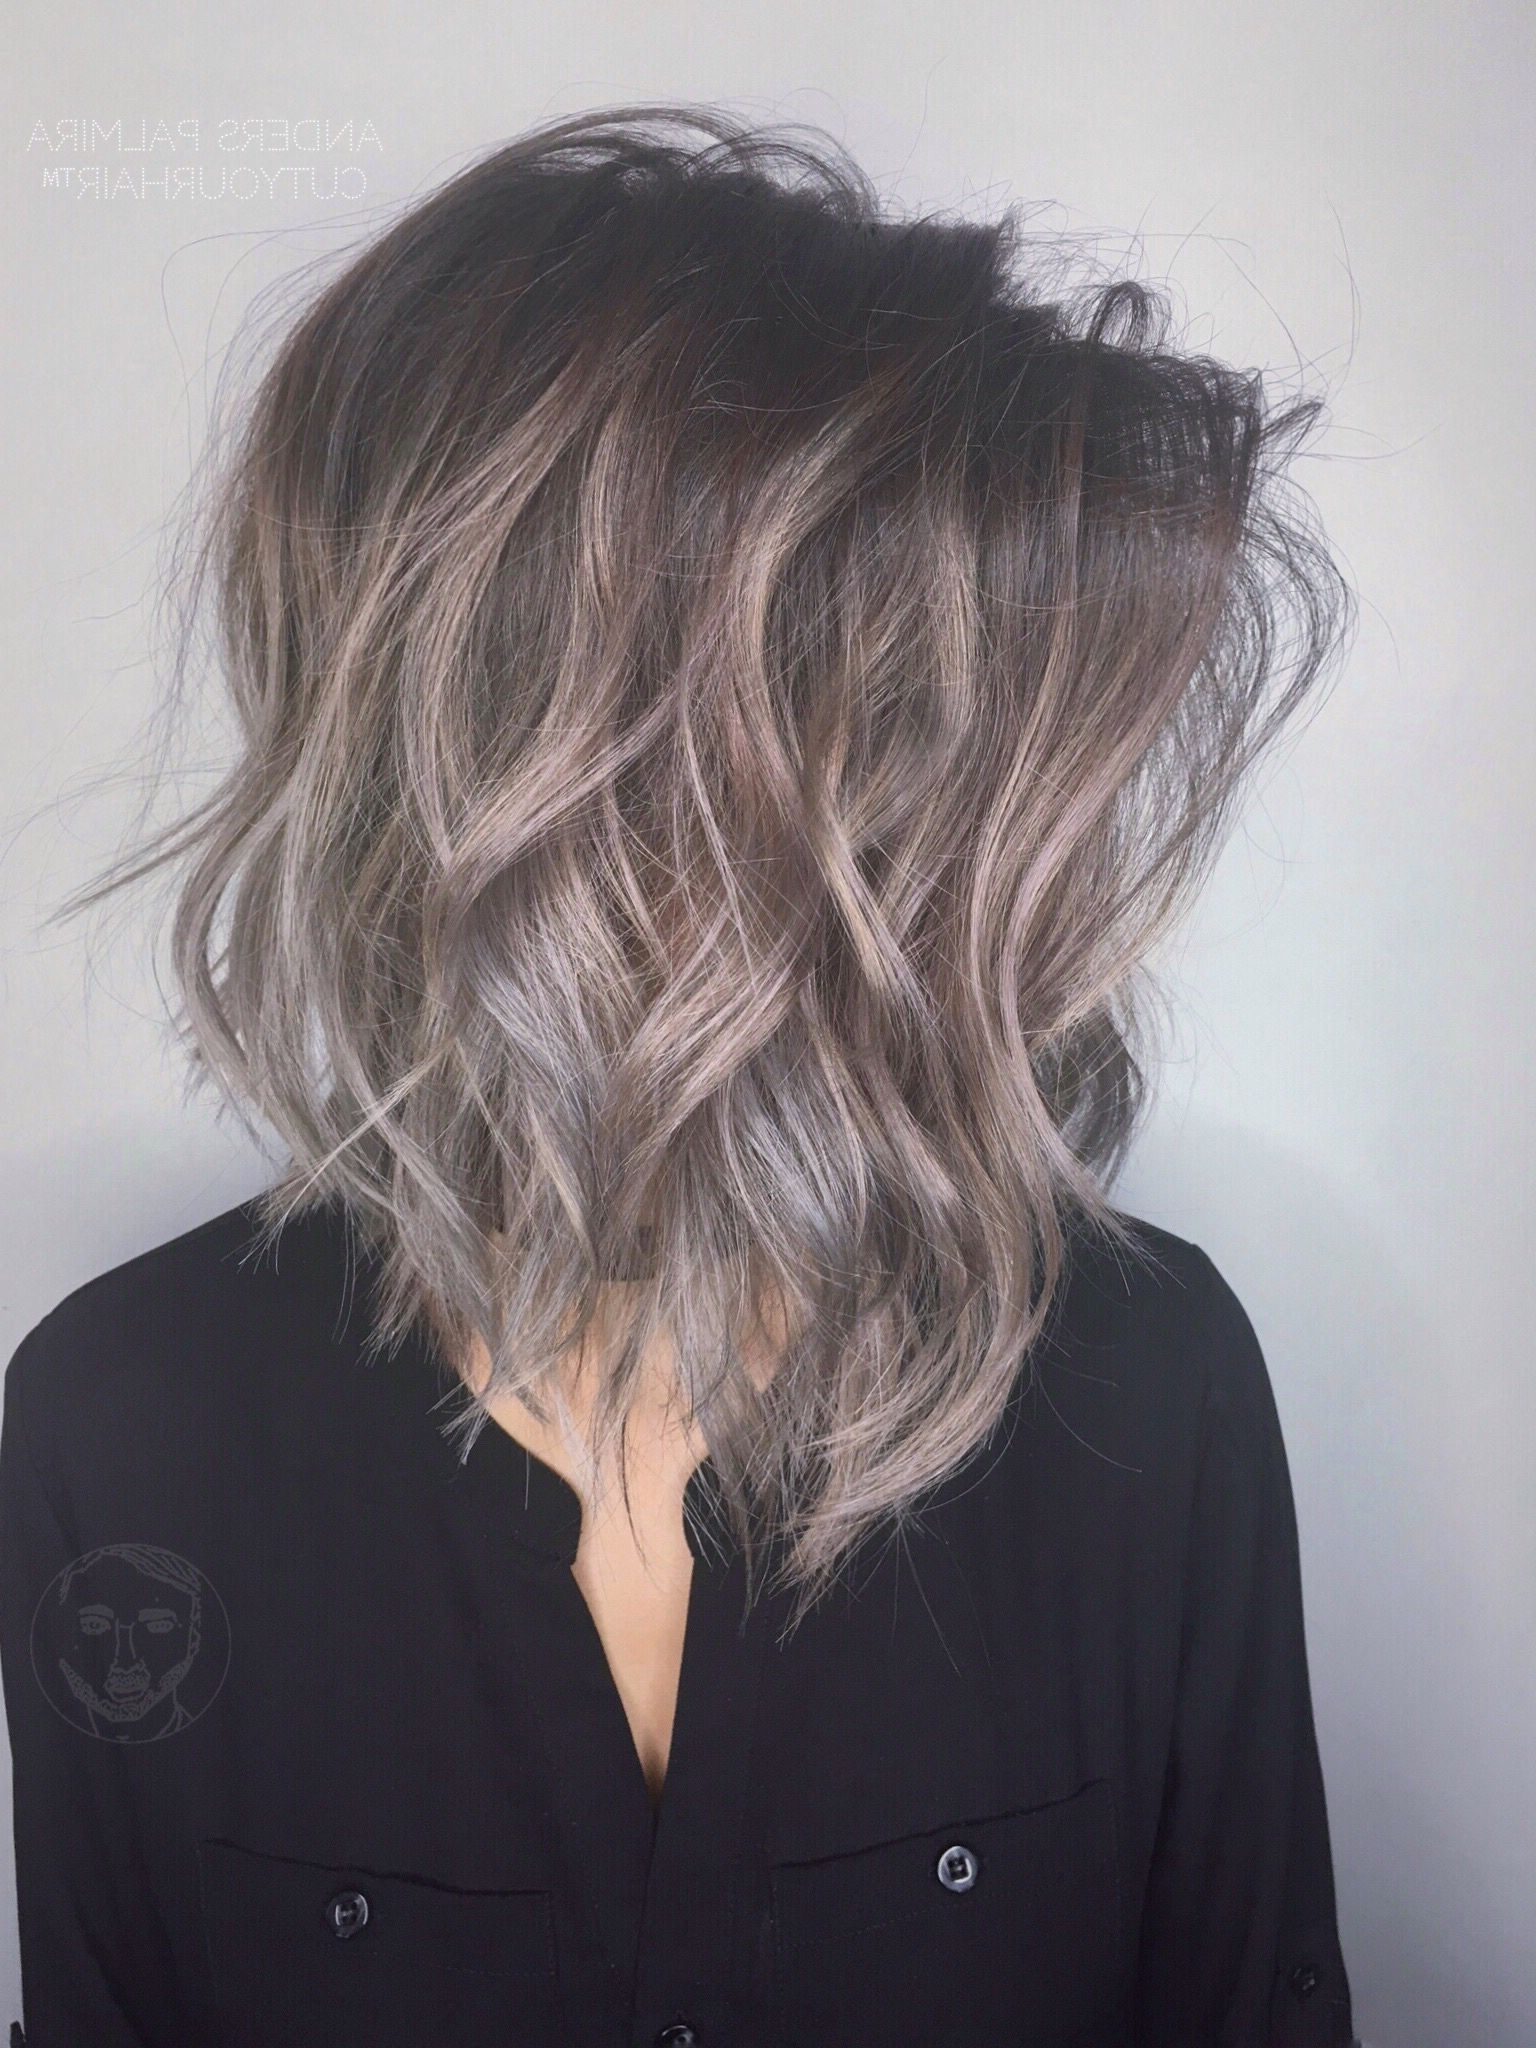 Aveda Wavy Long Blonde Bob Short Hair Beach Wave Medium Ideas Lob With Most Up To Date Blunt Cut White Gold Lob Blonde Hairstyles (Gallery 11 of 20)